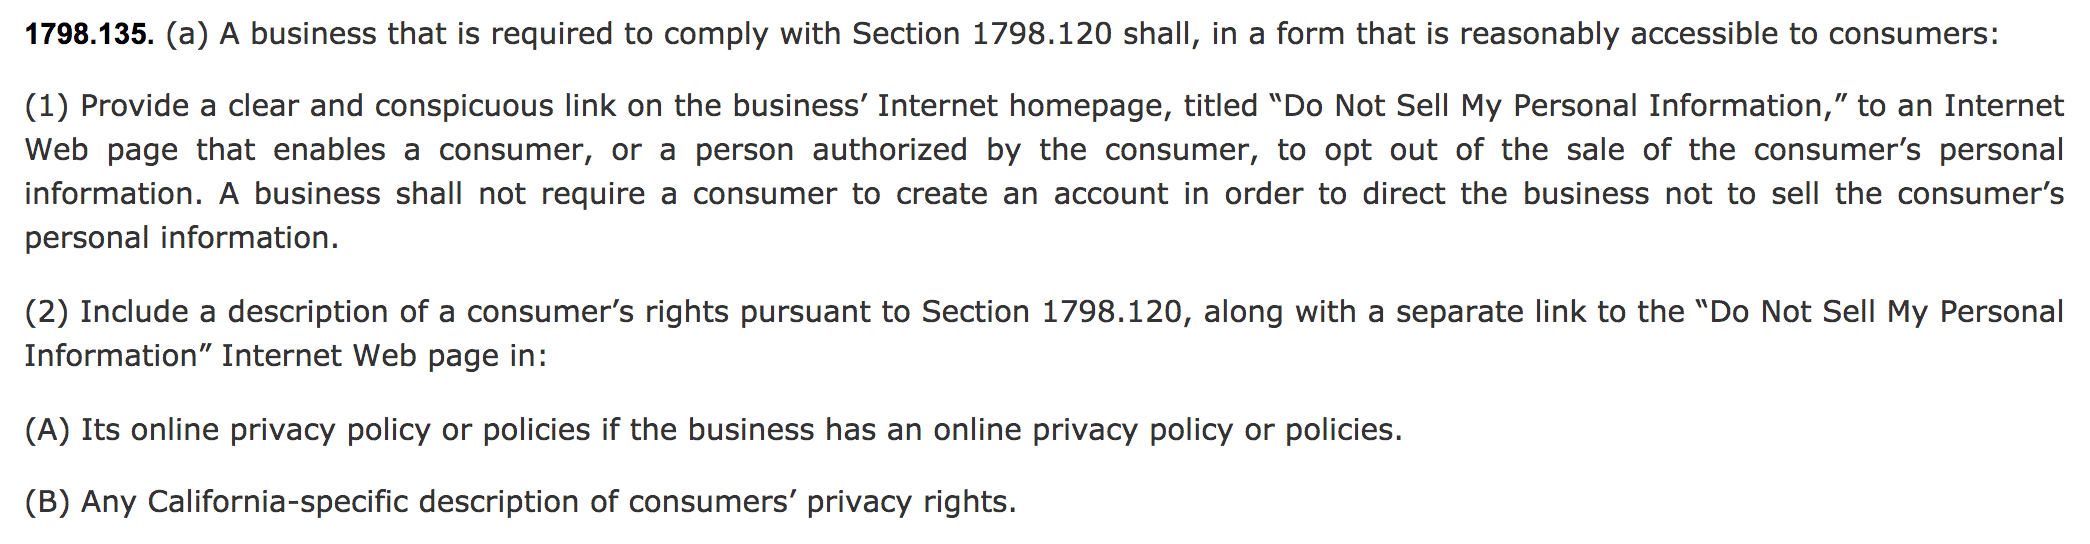 CCPA requires a Privacy Policy